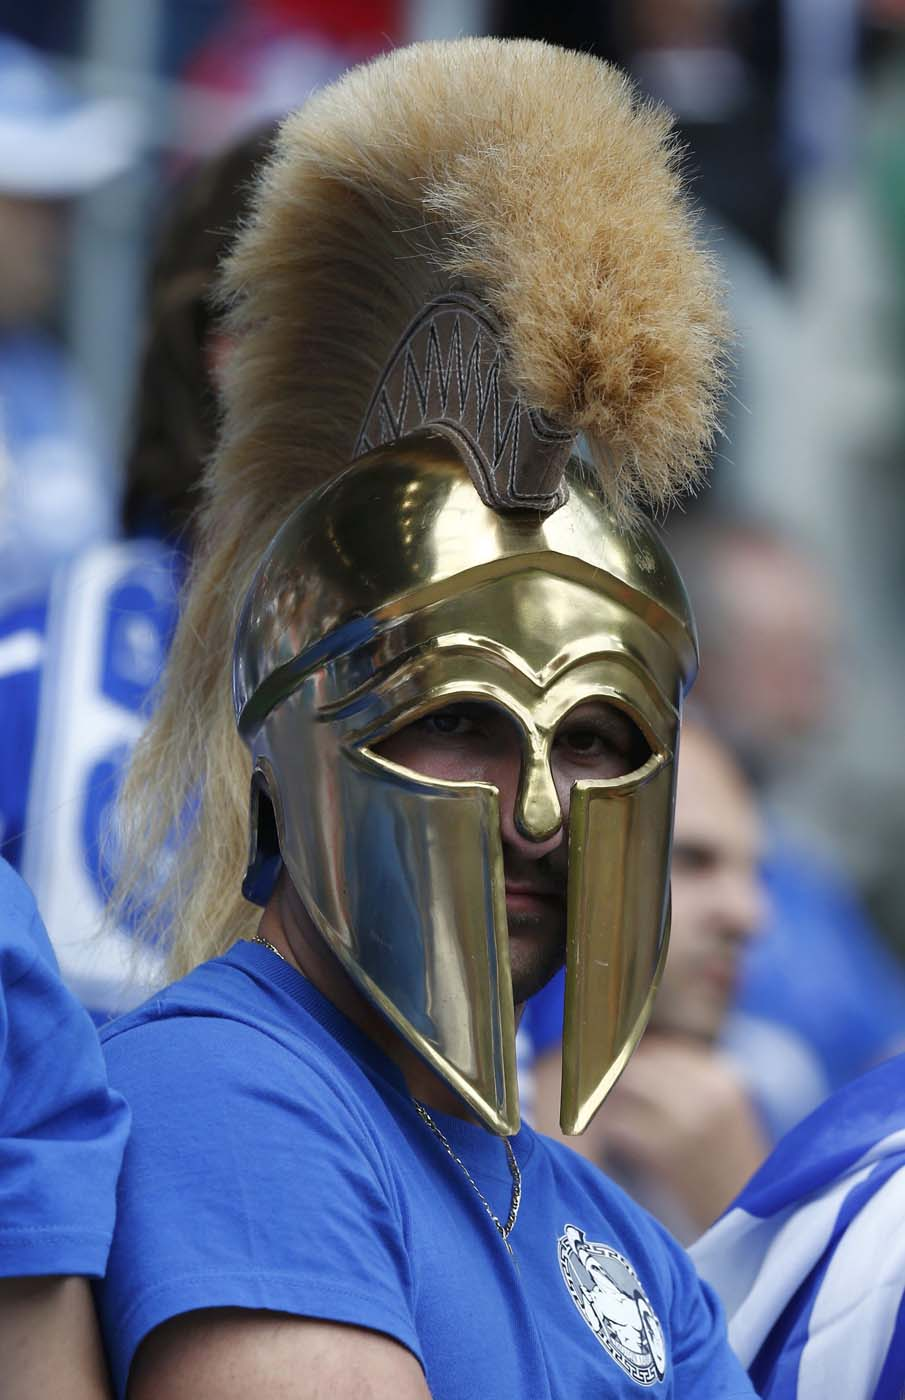 A Greece soccer fan wearing a Spartan helmet waits for the start of the Group A Euro 2012 soccer match against Czech Republic at the city stadium in Wroclaw, June 12, 2012. (Dominic Ebenbichler/Reuters)